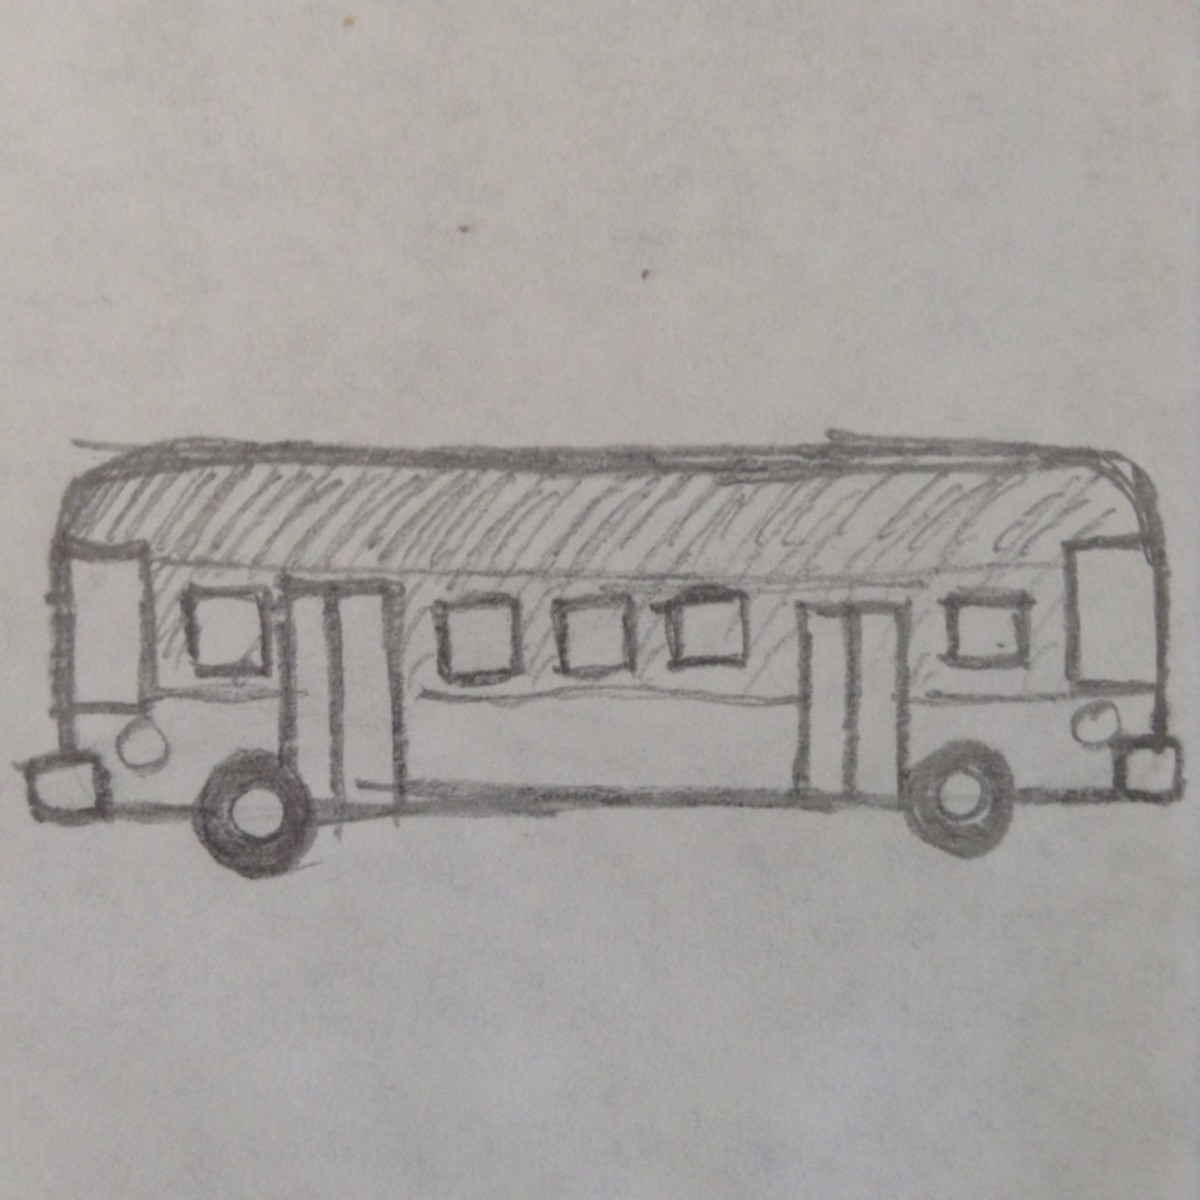 How to draw a city bus.